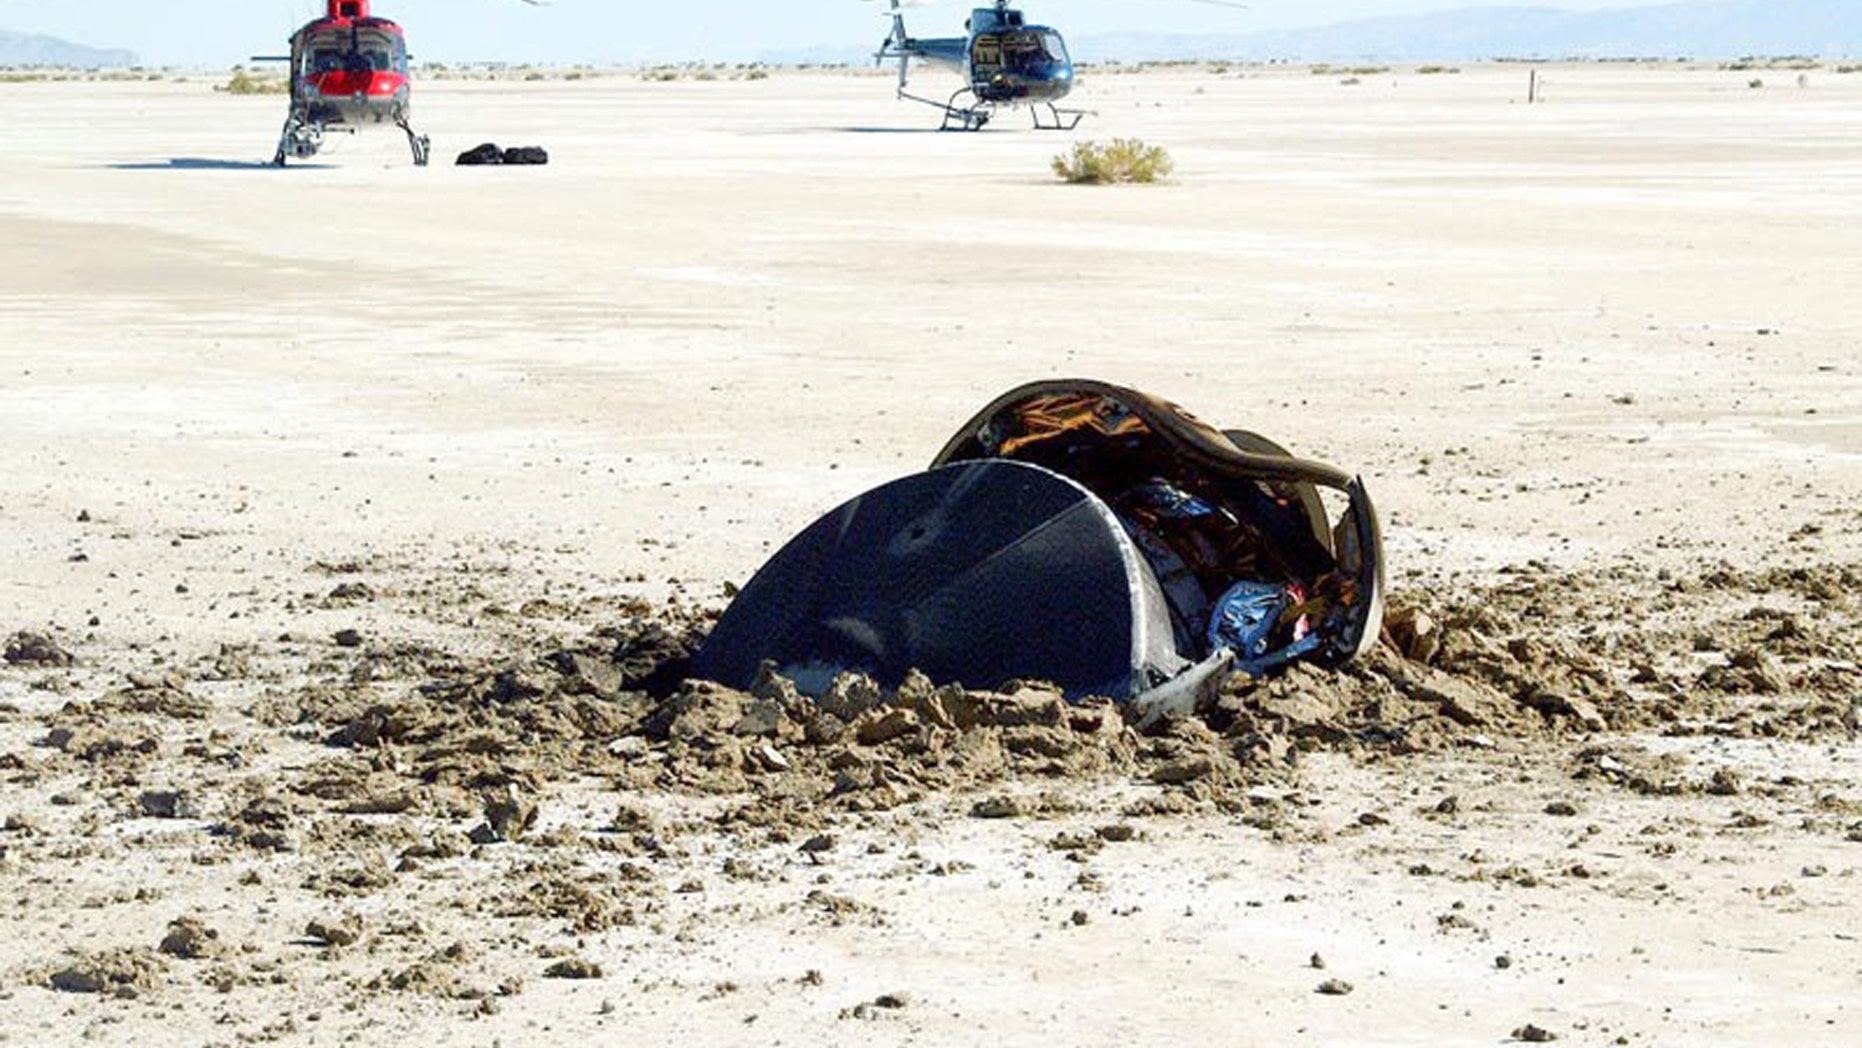 NASA posts image of crashed 'flying saucer from outer space'